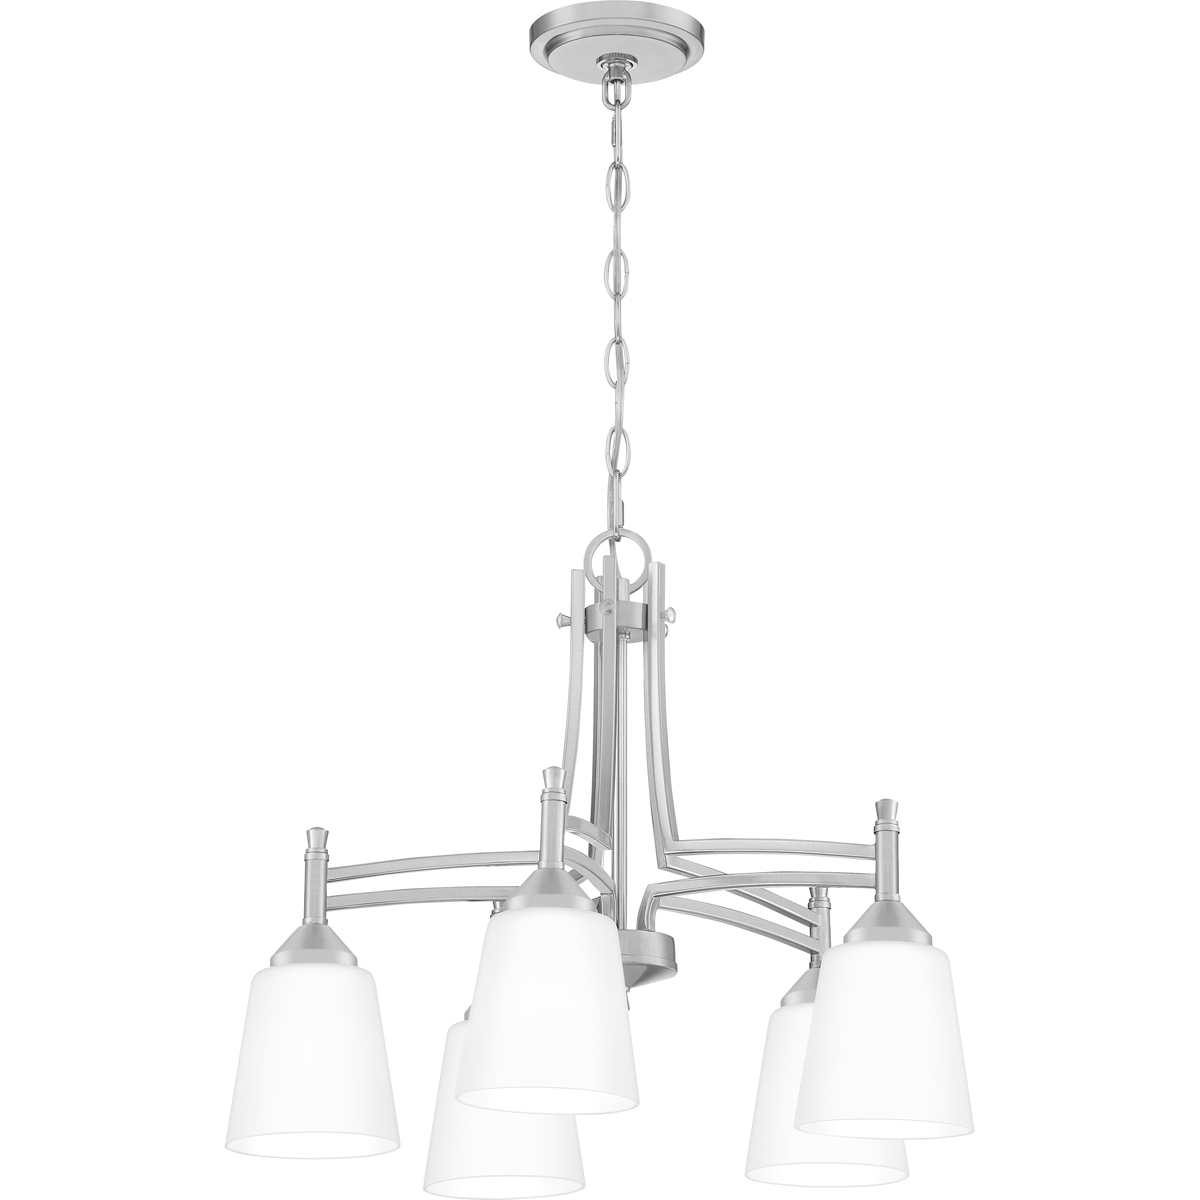 Primary image for Billingsley 5-Light Chandelier in Brushed Nickel